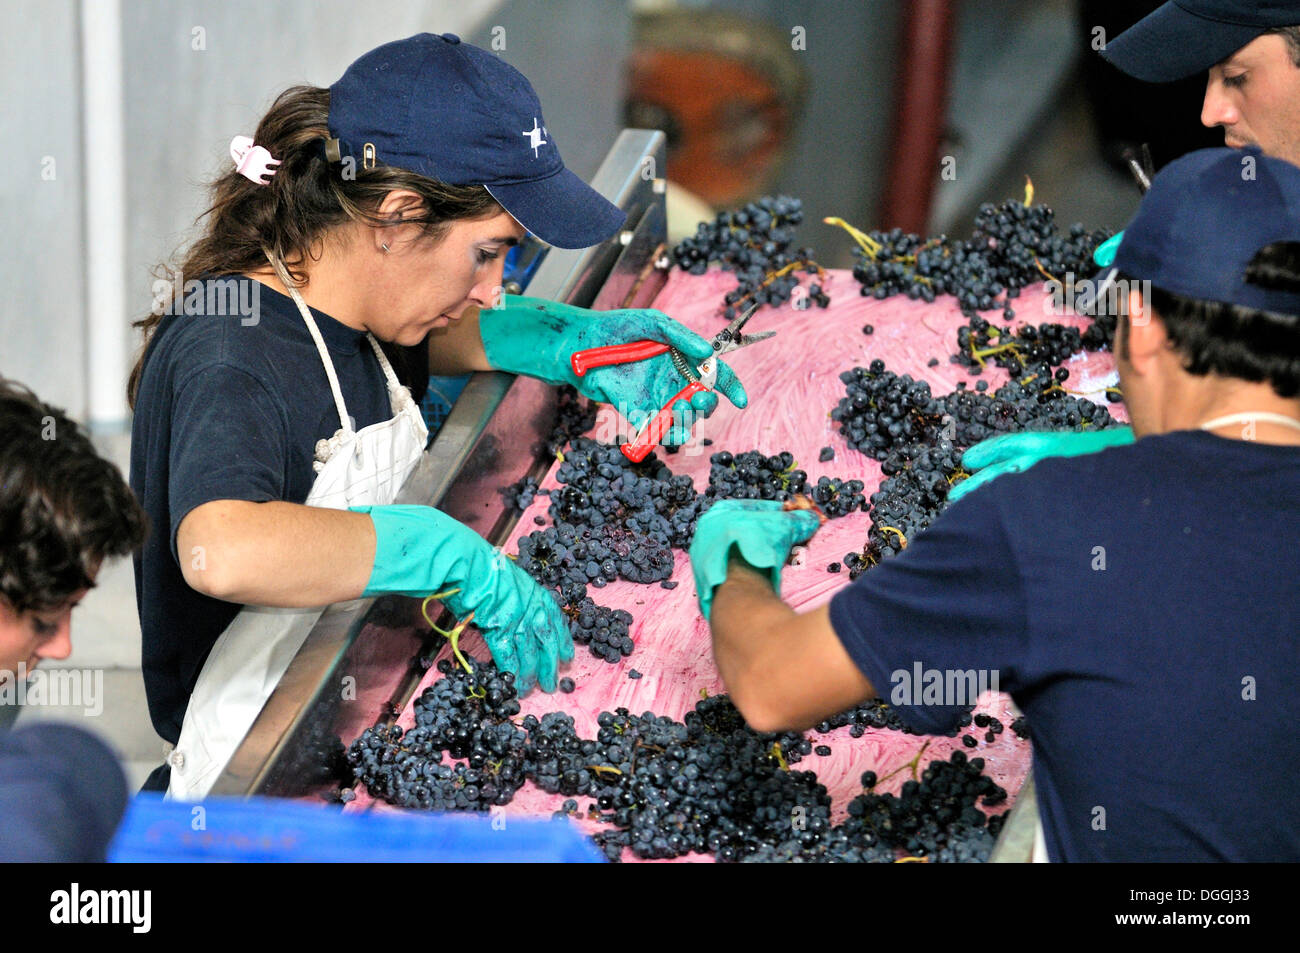 Vintage of Syrah grapes on the Carinae vineyard, before the fermentation process, the grapes are tested for quality and sorted - Stock Image